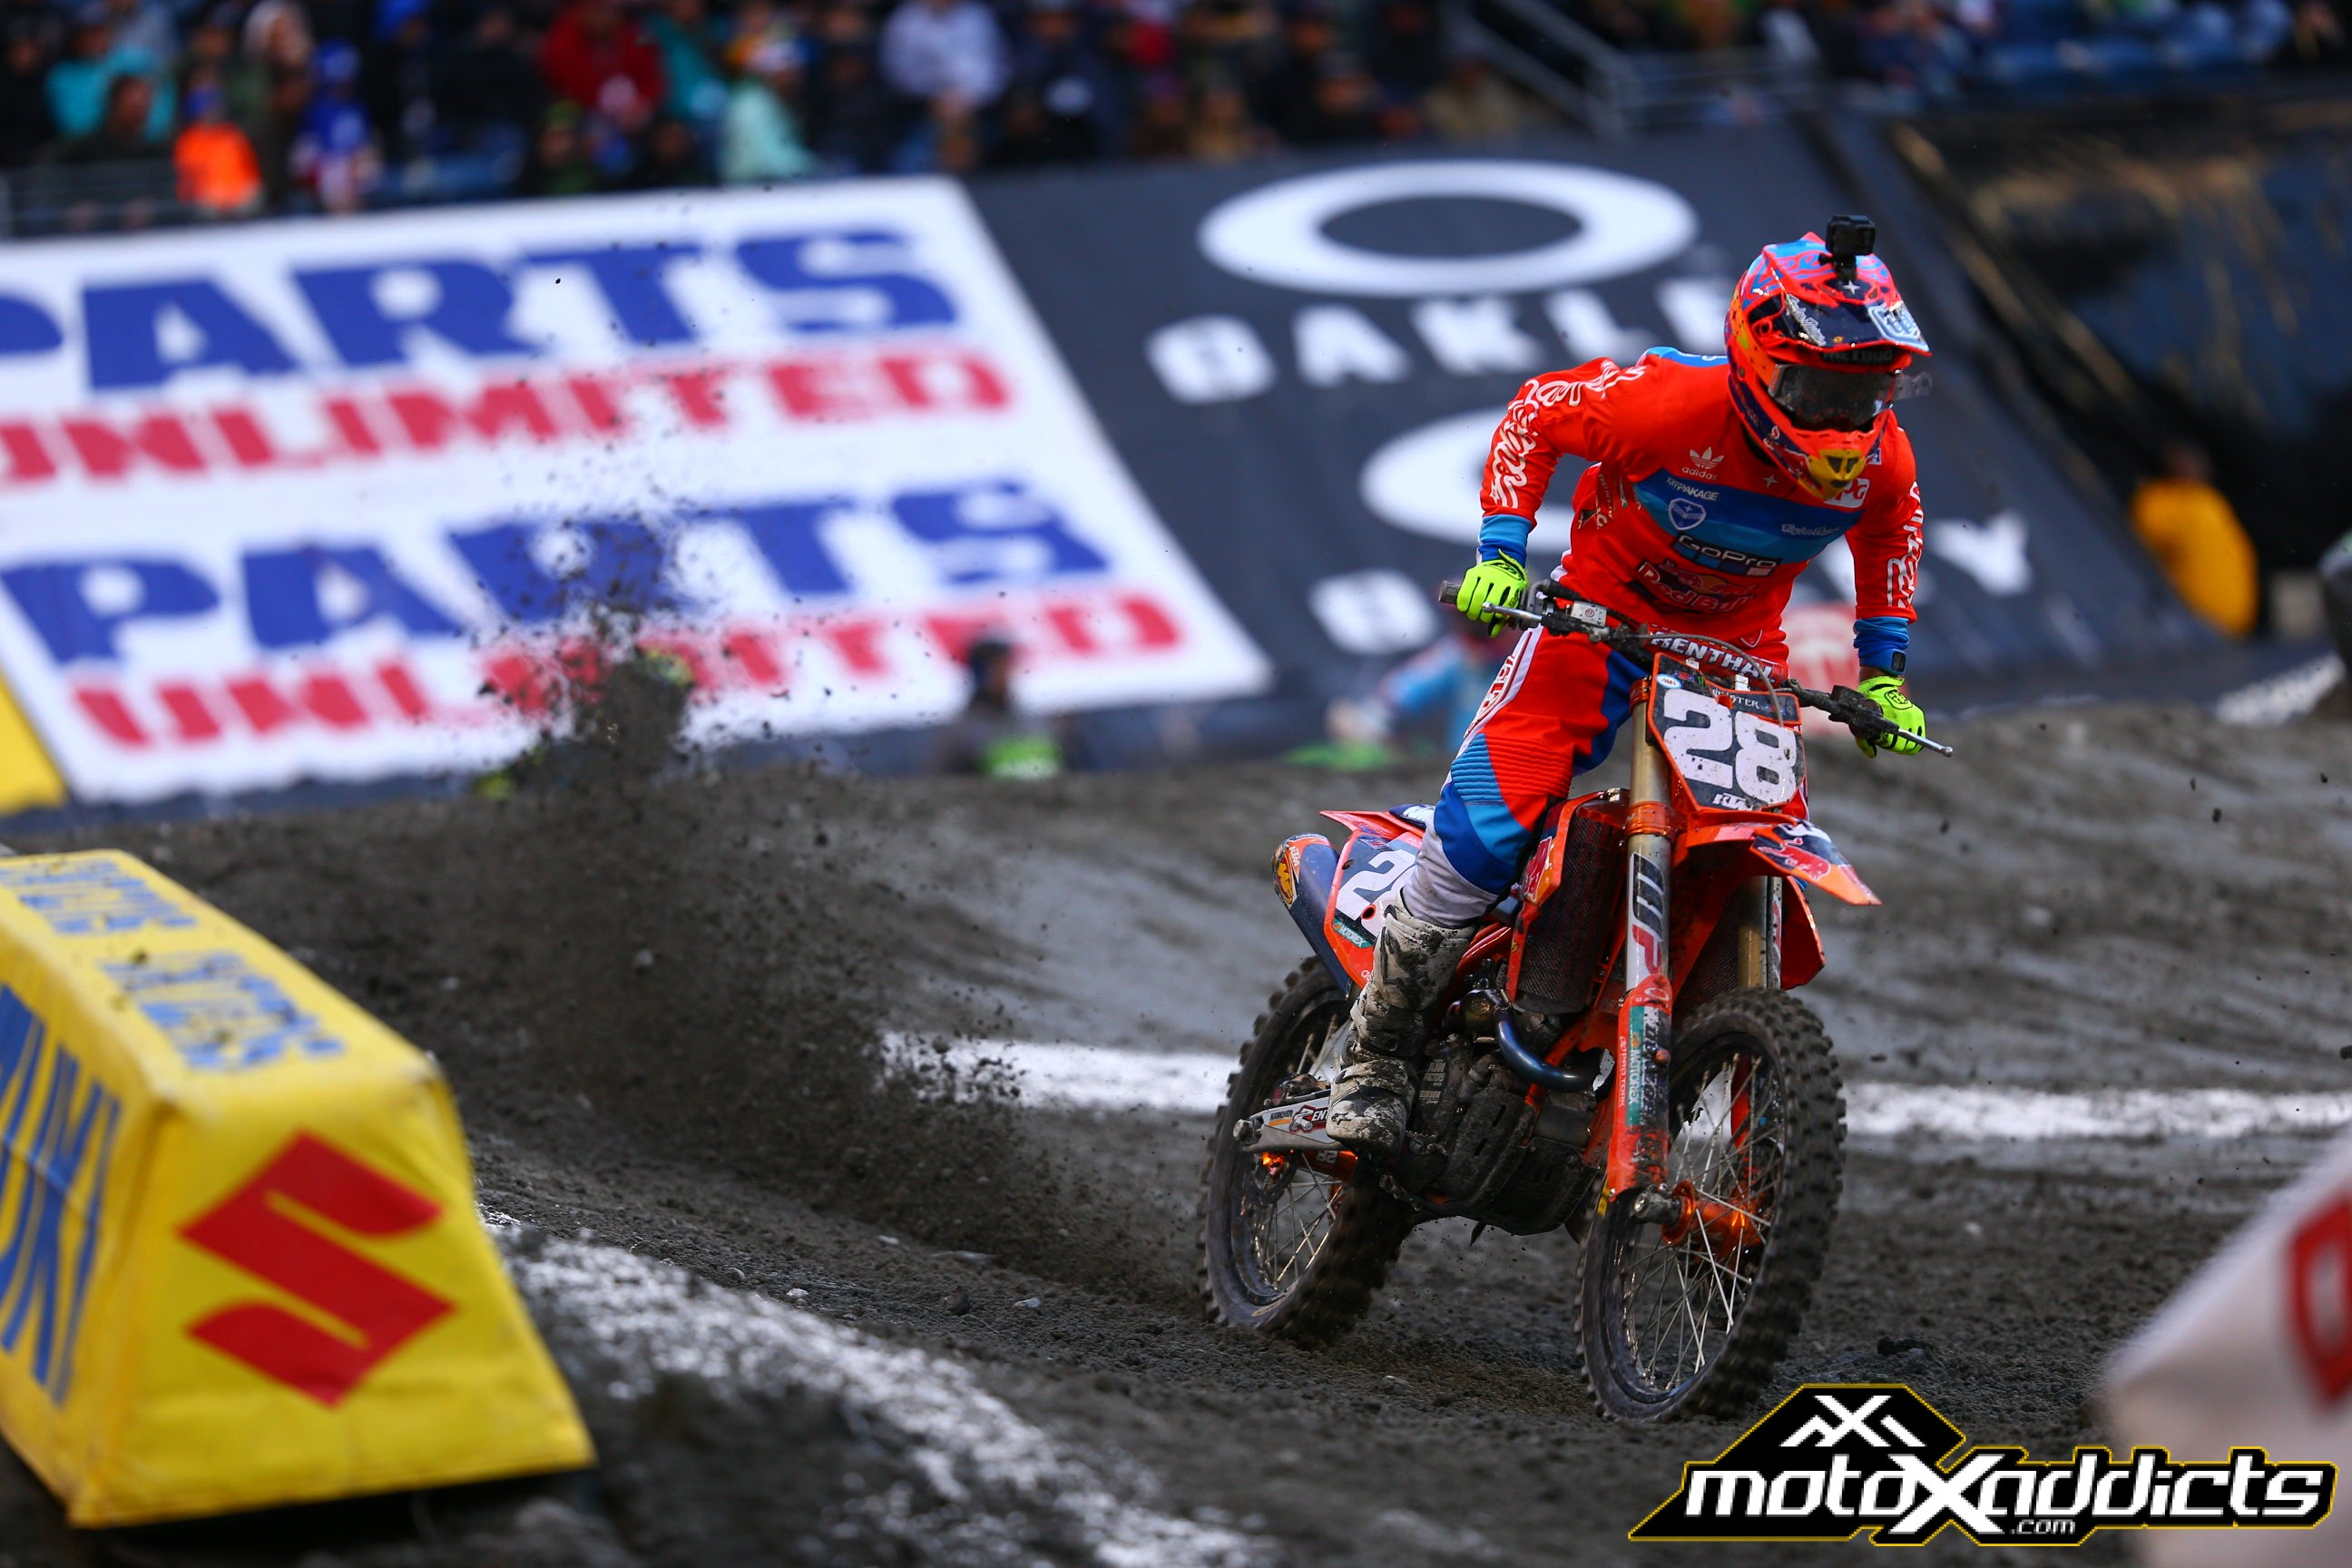 After a rough start to the season, Oldenburg fought to a well deserved 3rd in Seattle. Photo: TLD / KTM